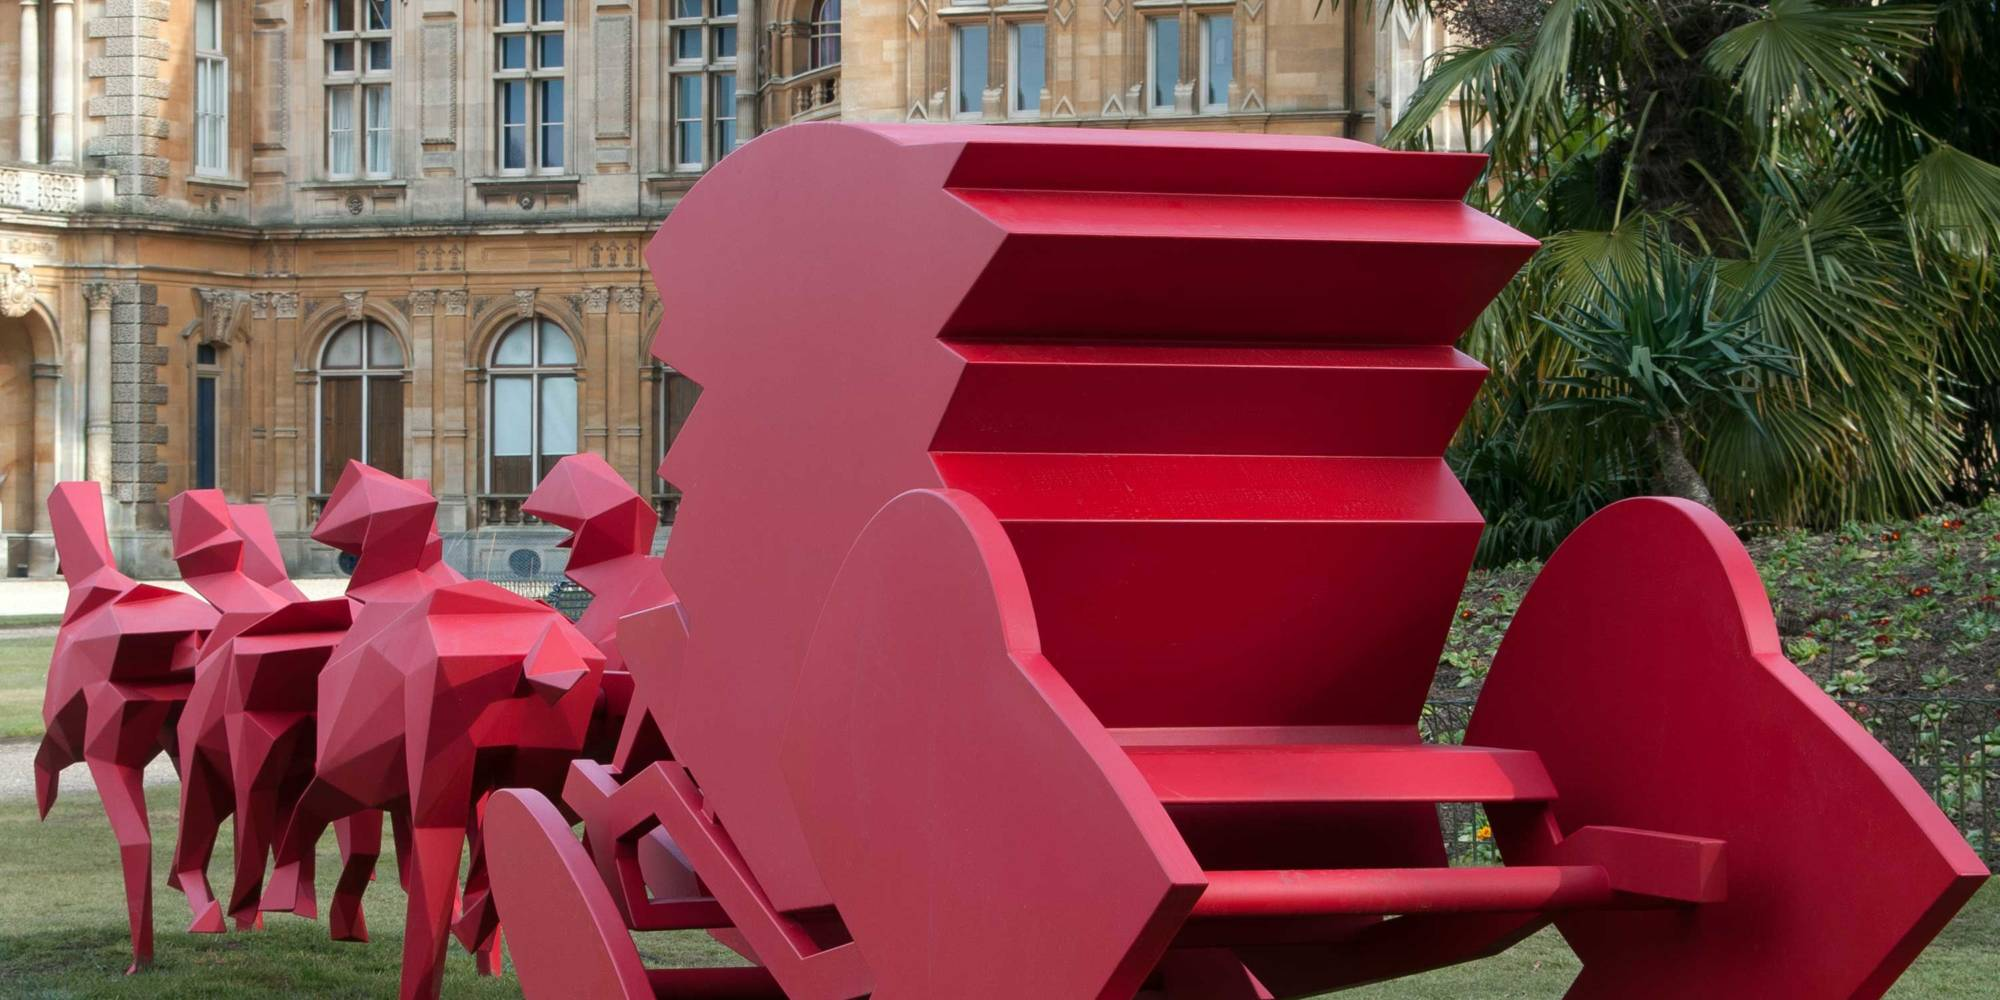 Carriage pulled by six horses in red powder-coated steel